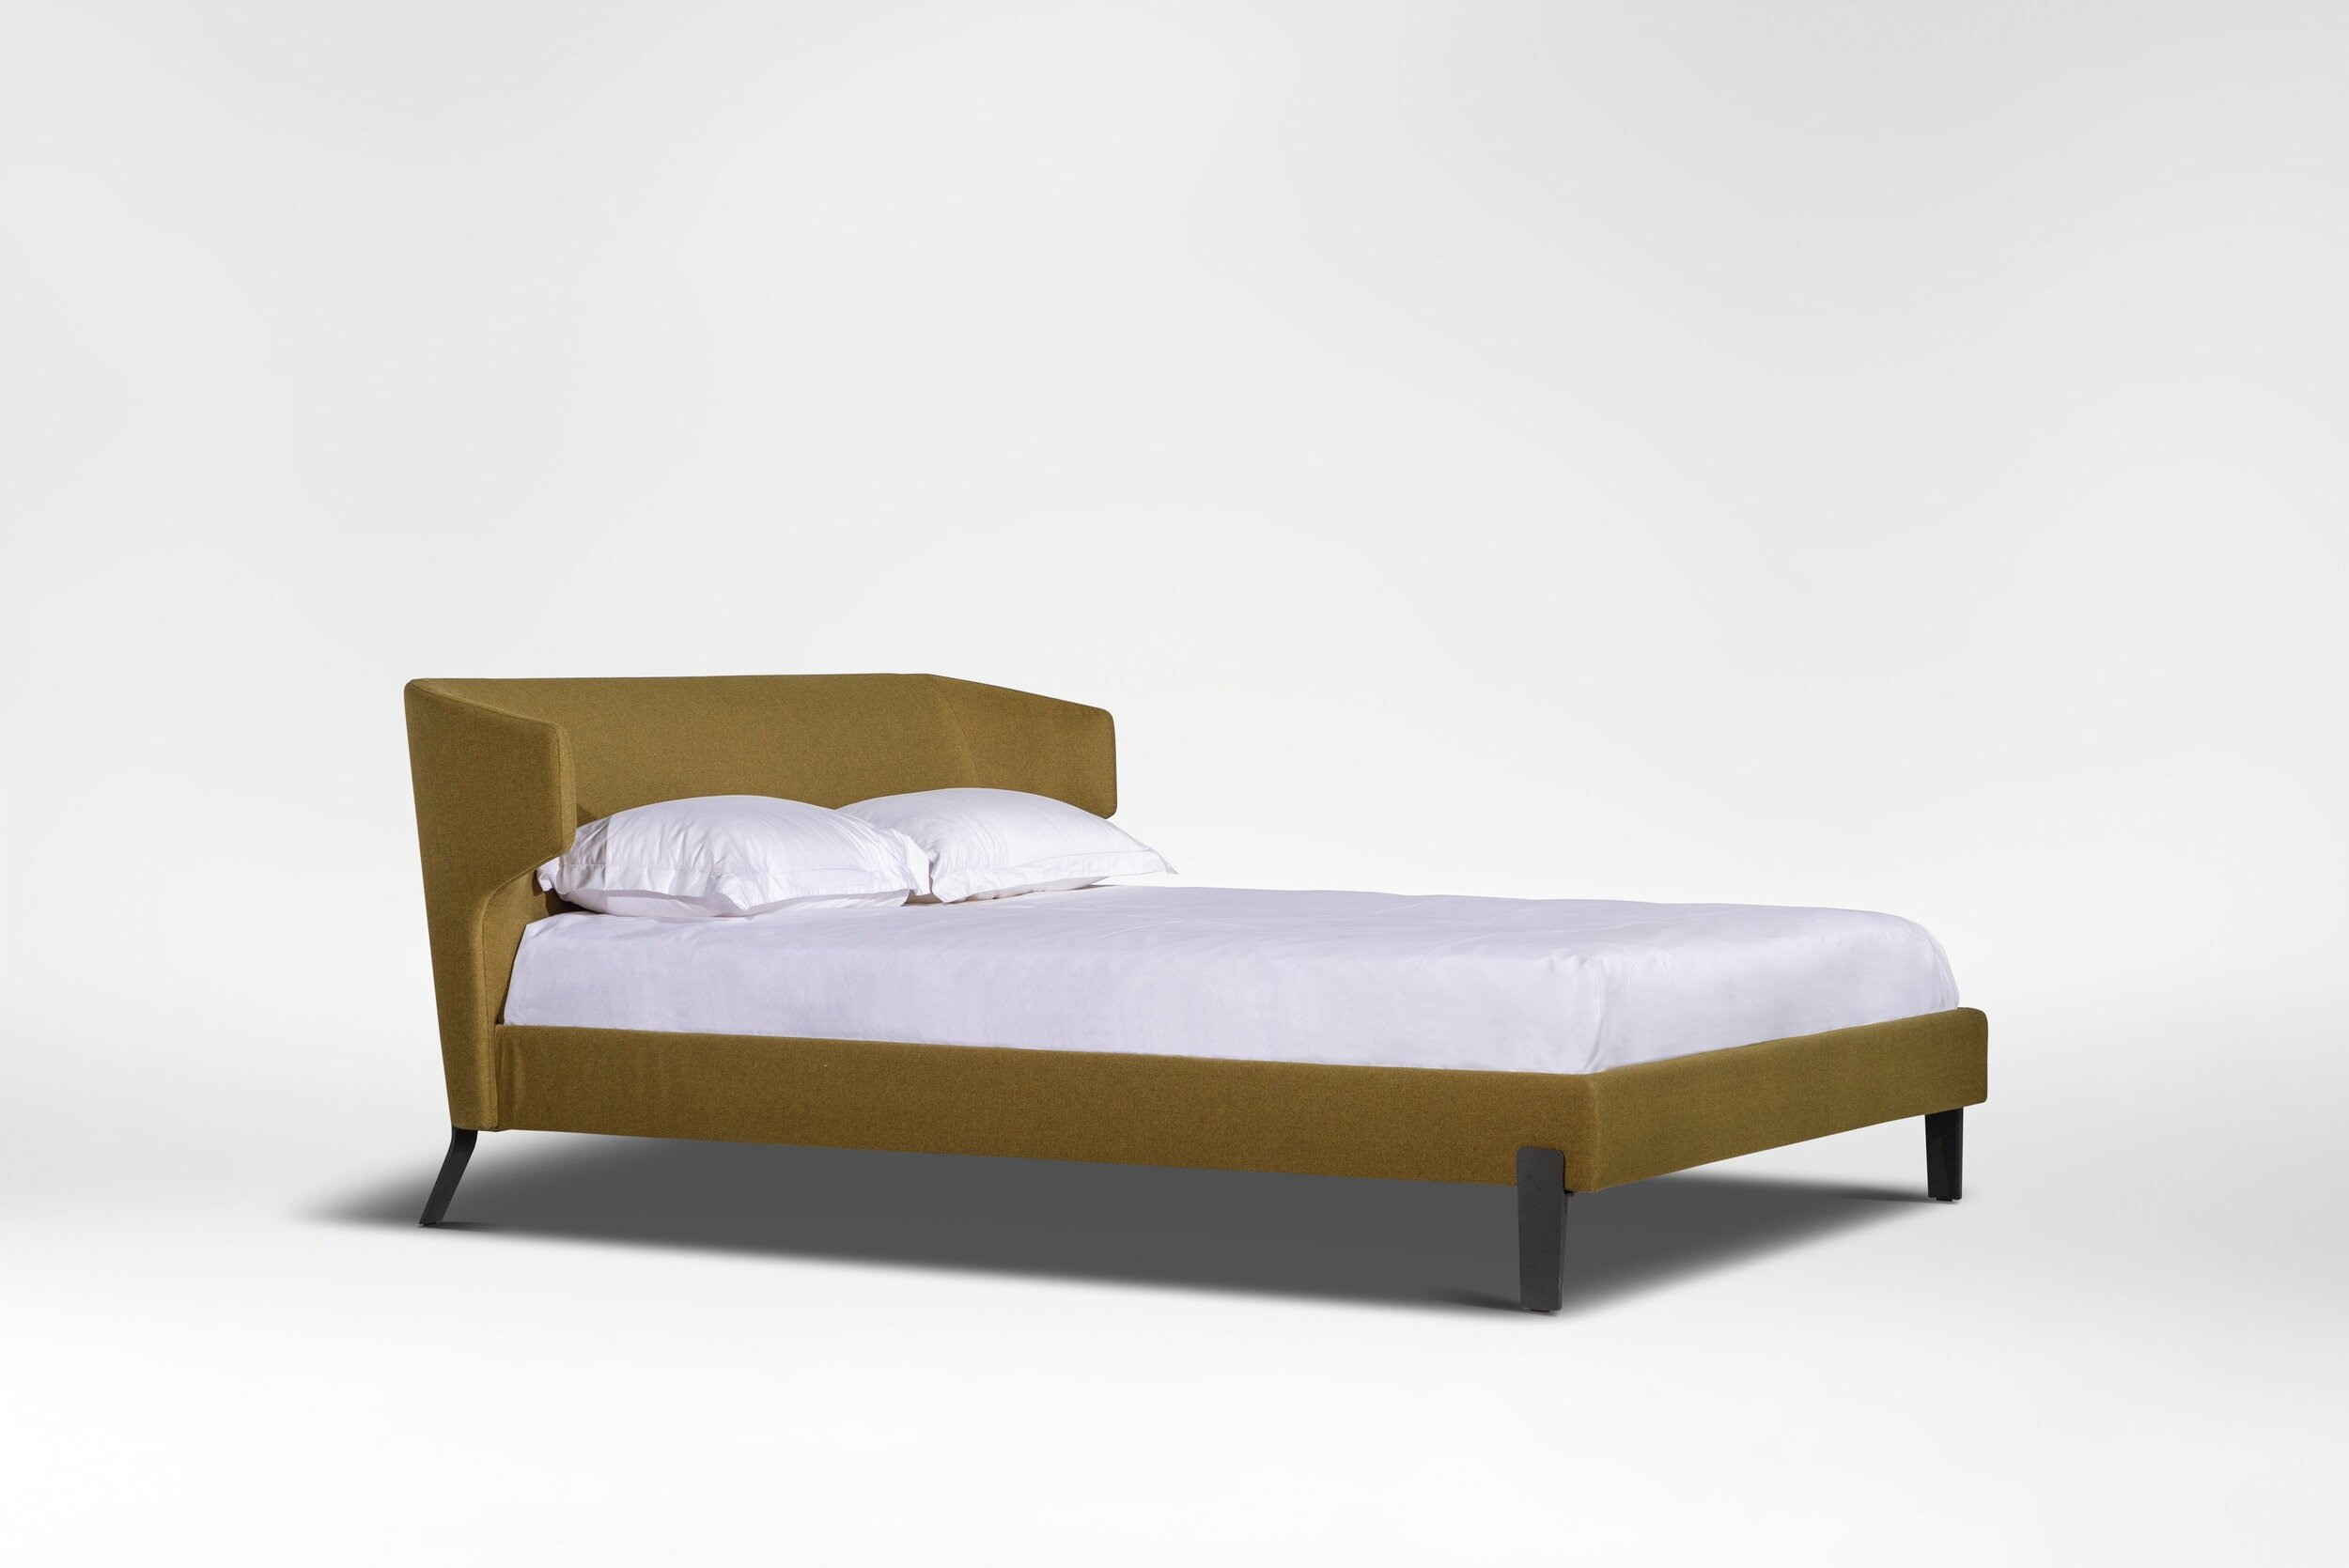 embrace bed - Decidedly modern with retro roots.